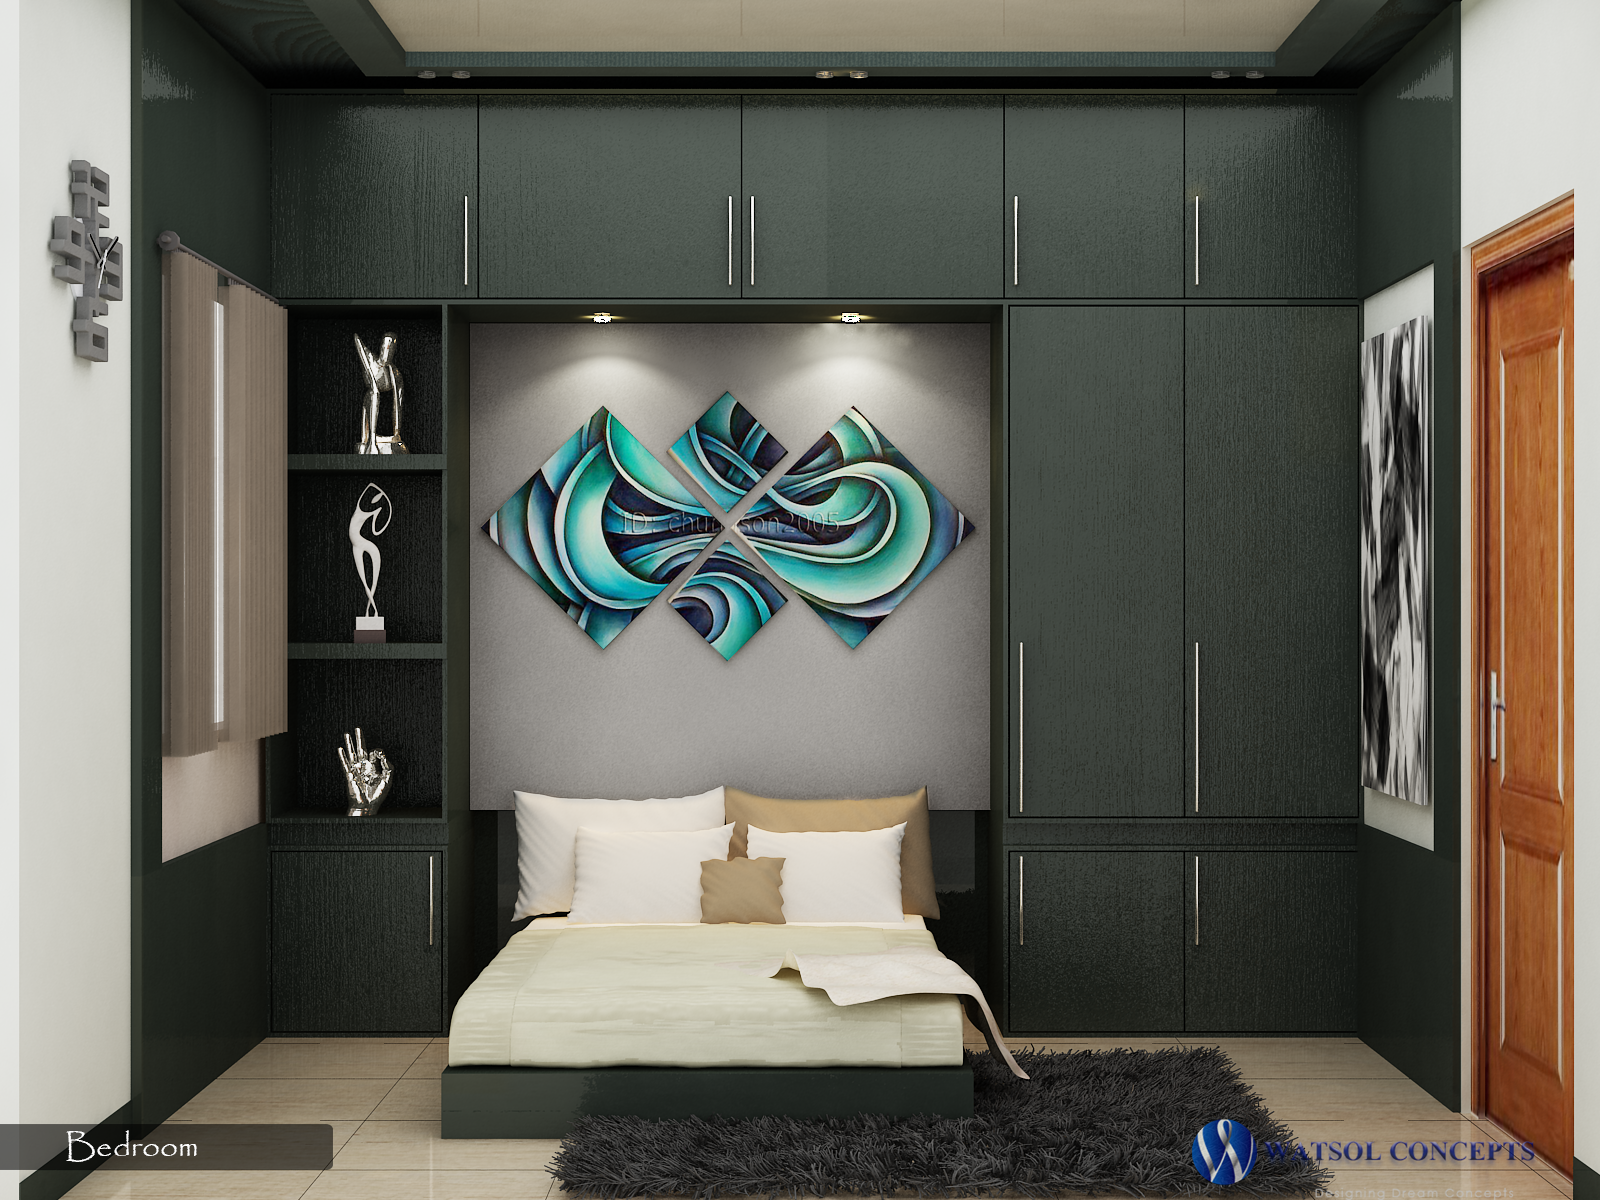 watsolconcepts is one which has office interiors home interior and